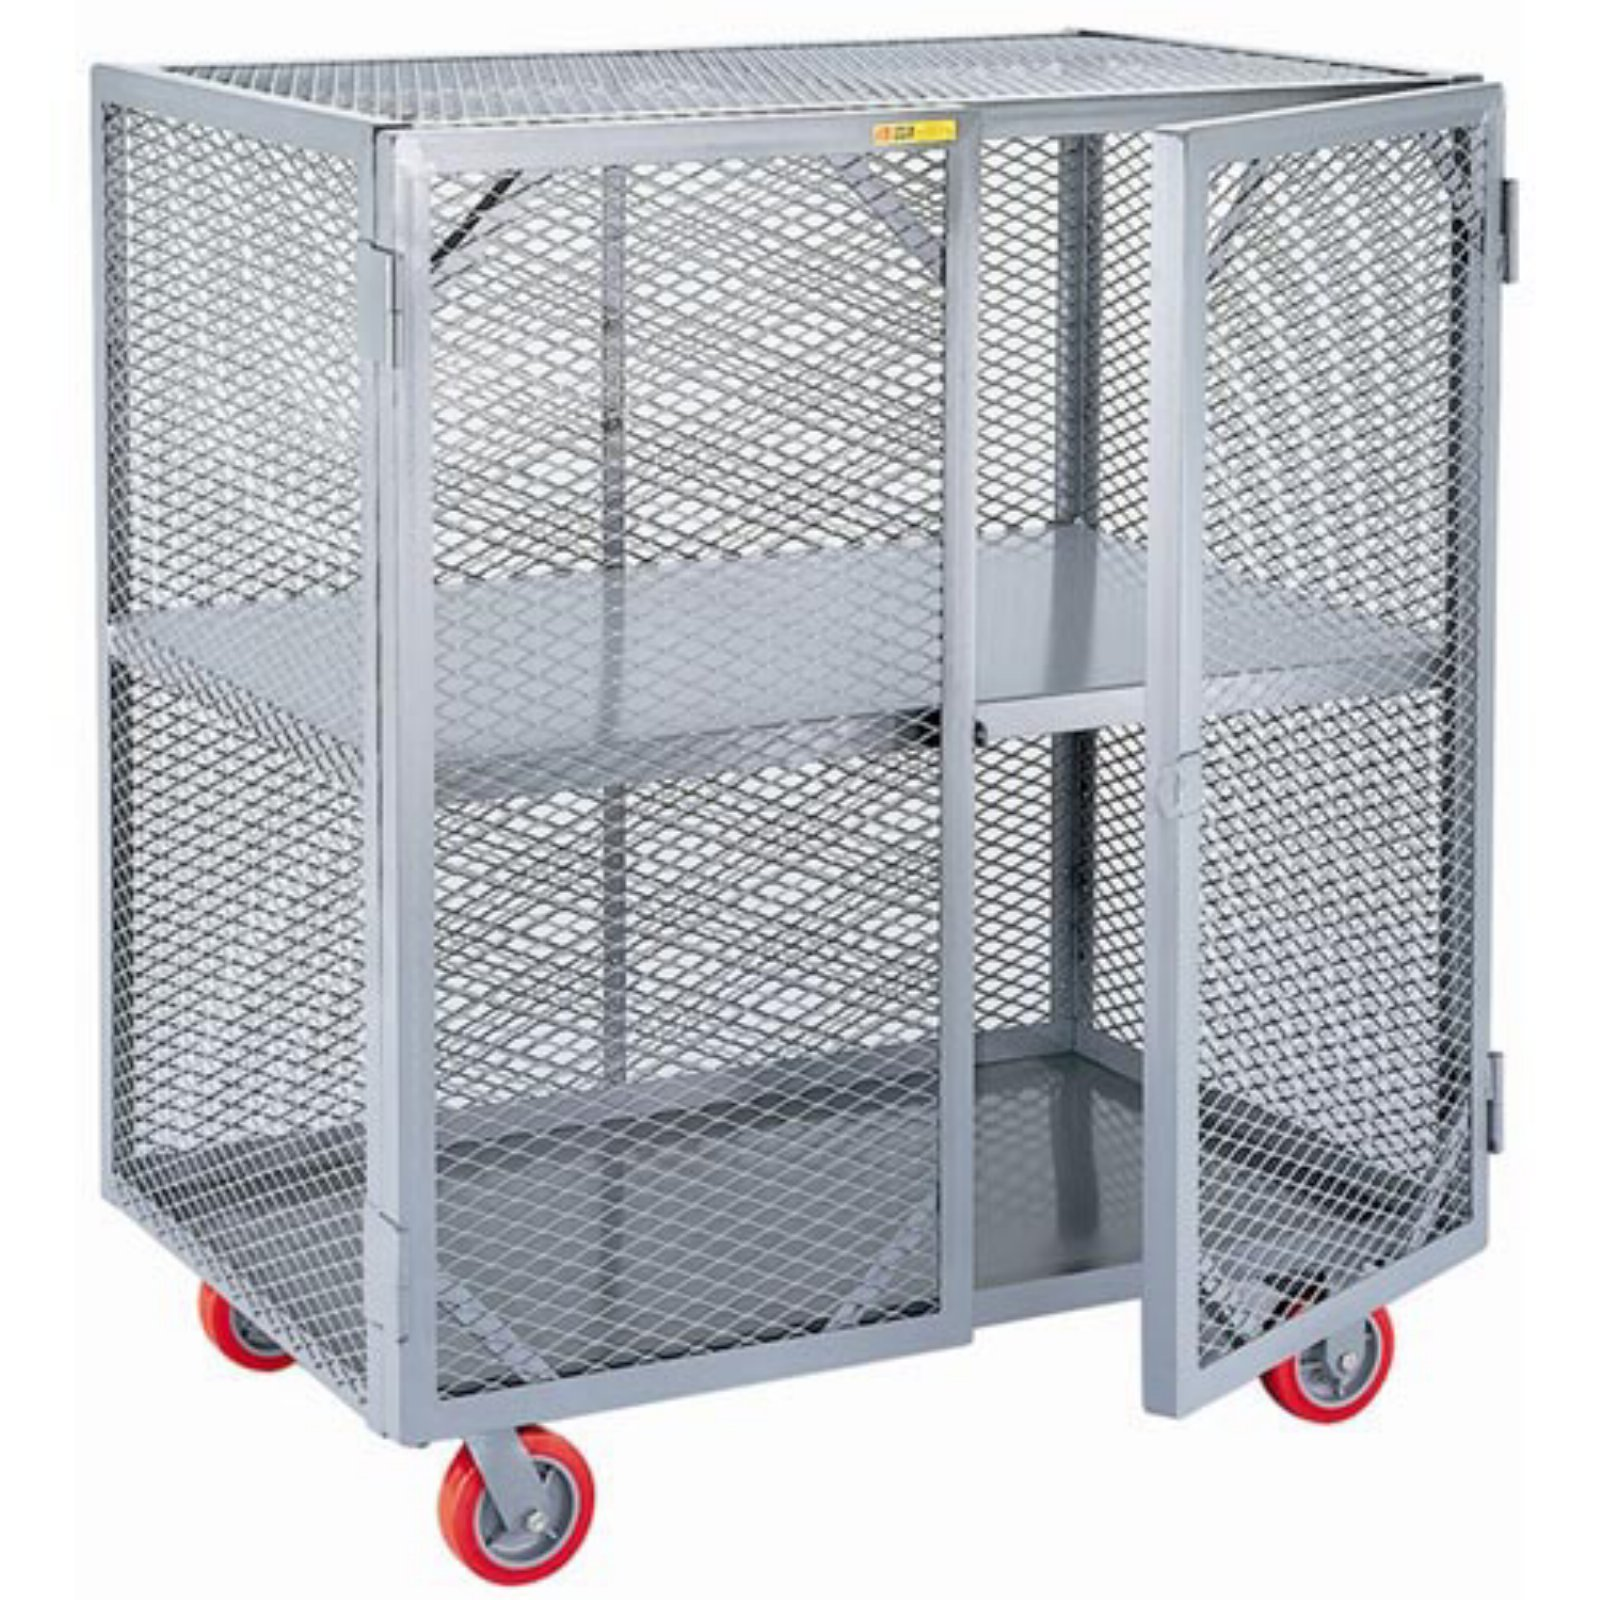 Little Giant Heavy Duty Storage Locker